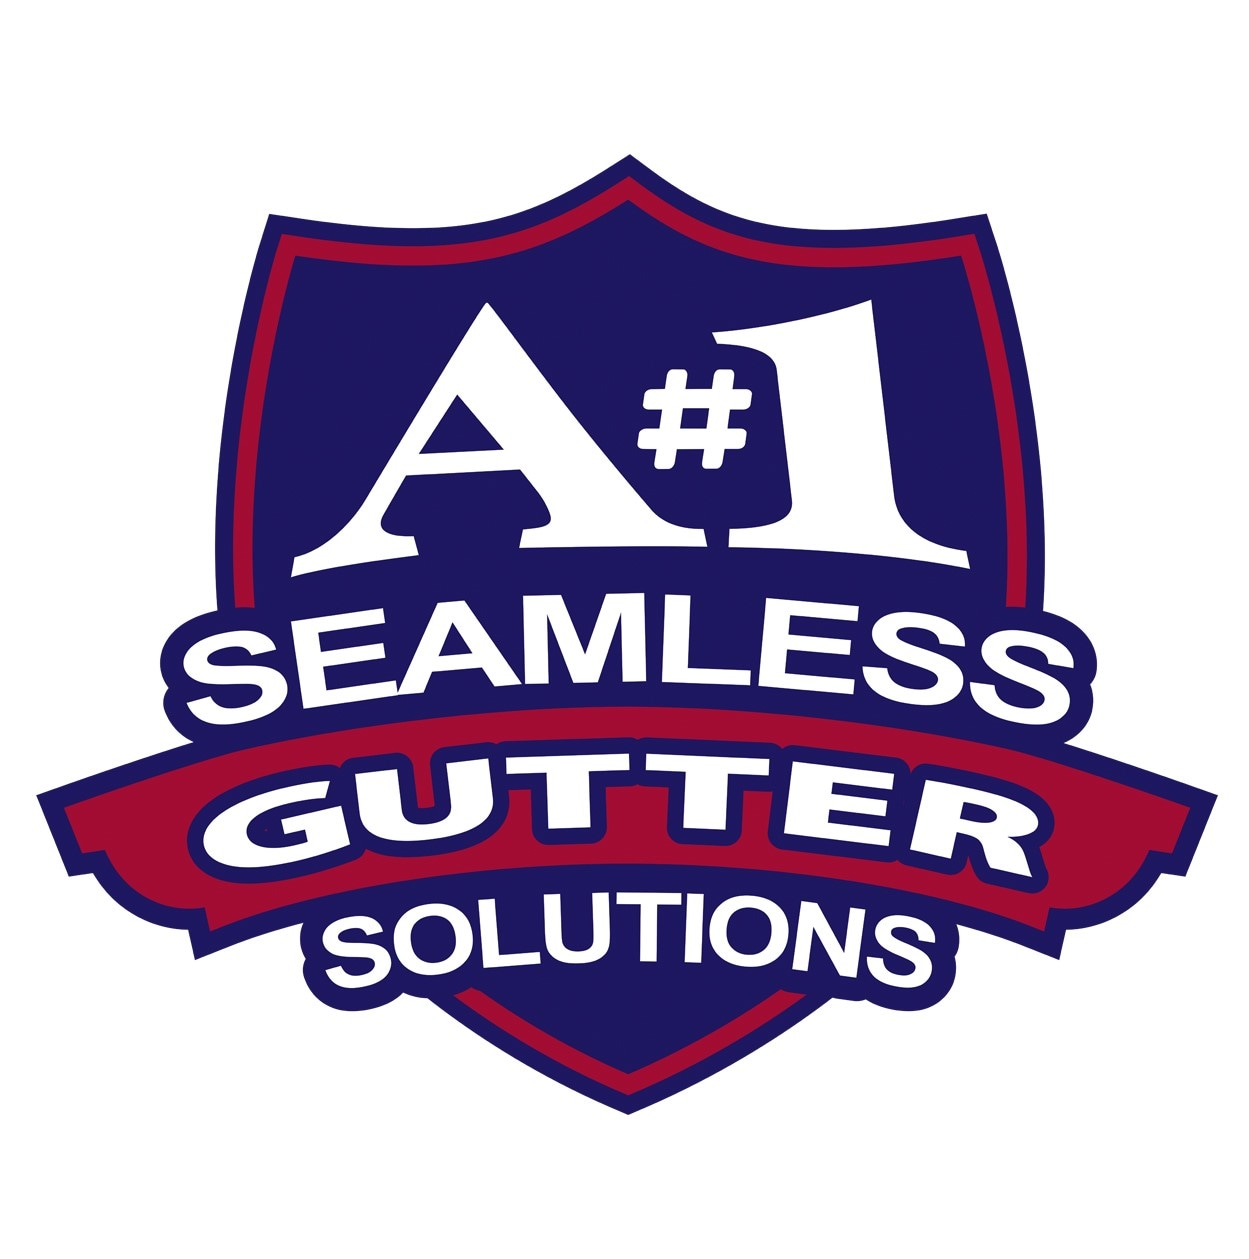 A#1 Seamless Gutter Solutions